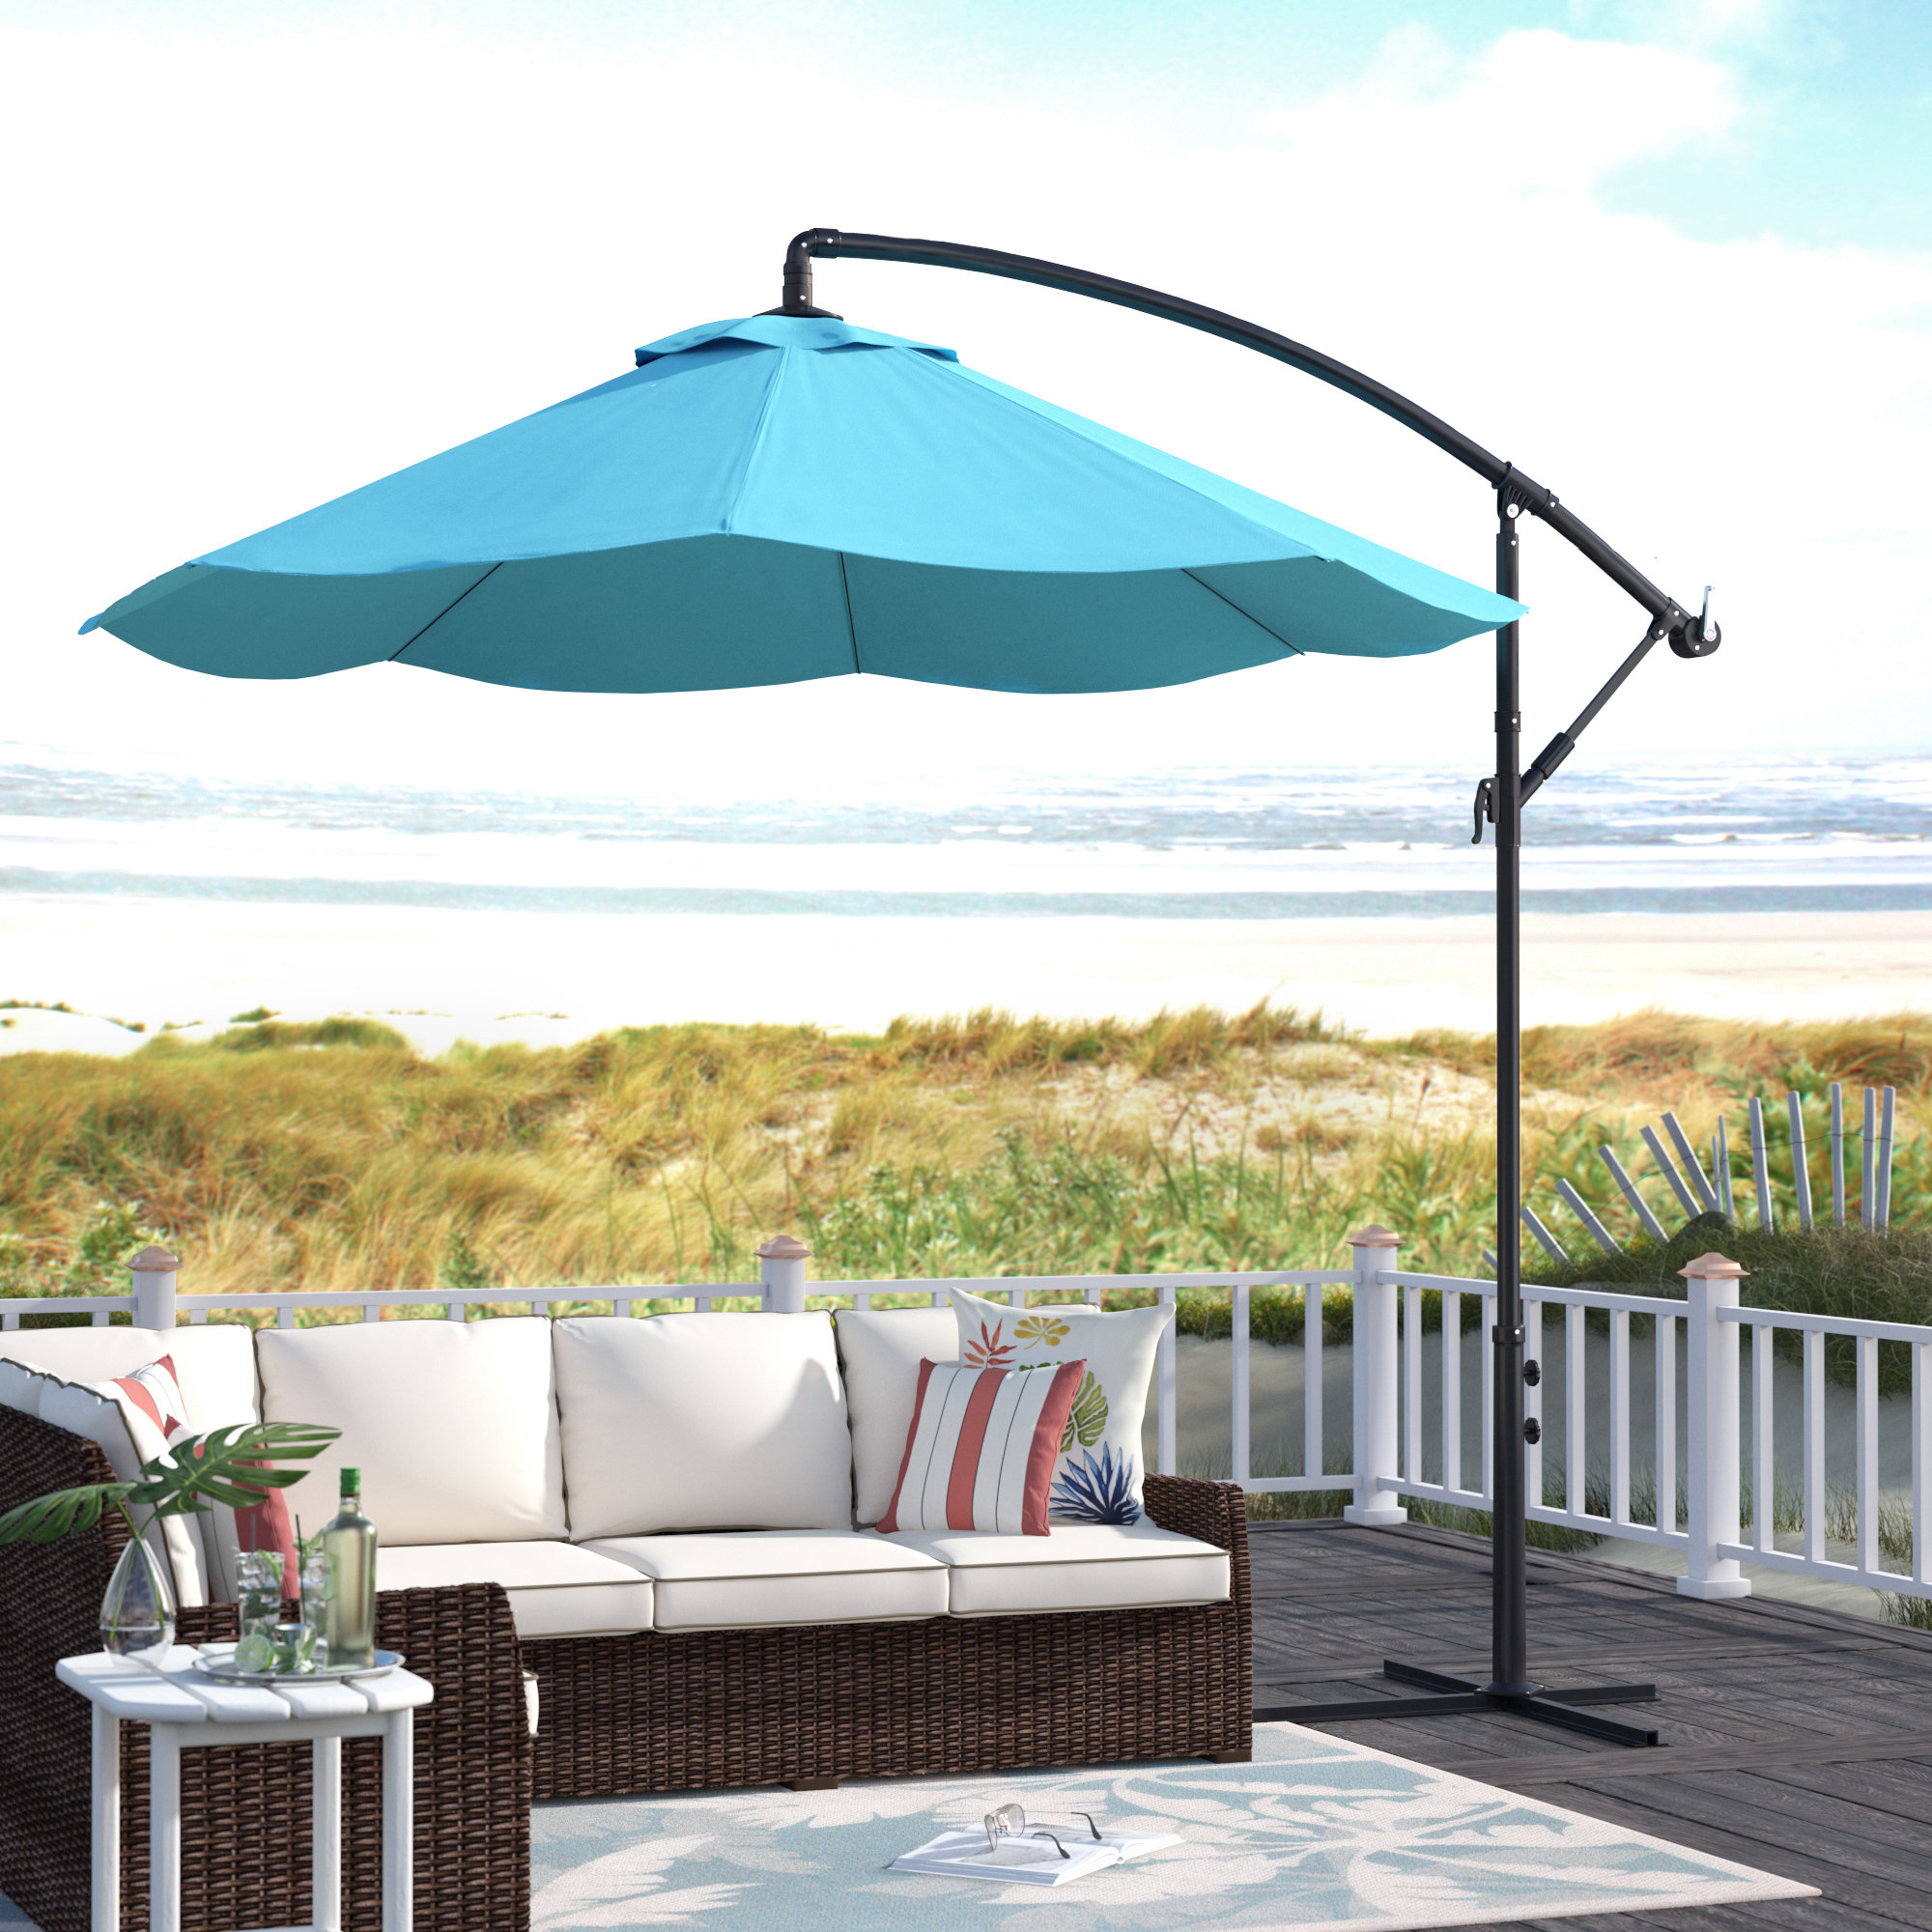 Dore Patio Cantilever Umbrellas Regarding Most Current Vassalboro 10' Cantilever Umbrella (Gallery 12 of 20)